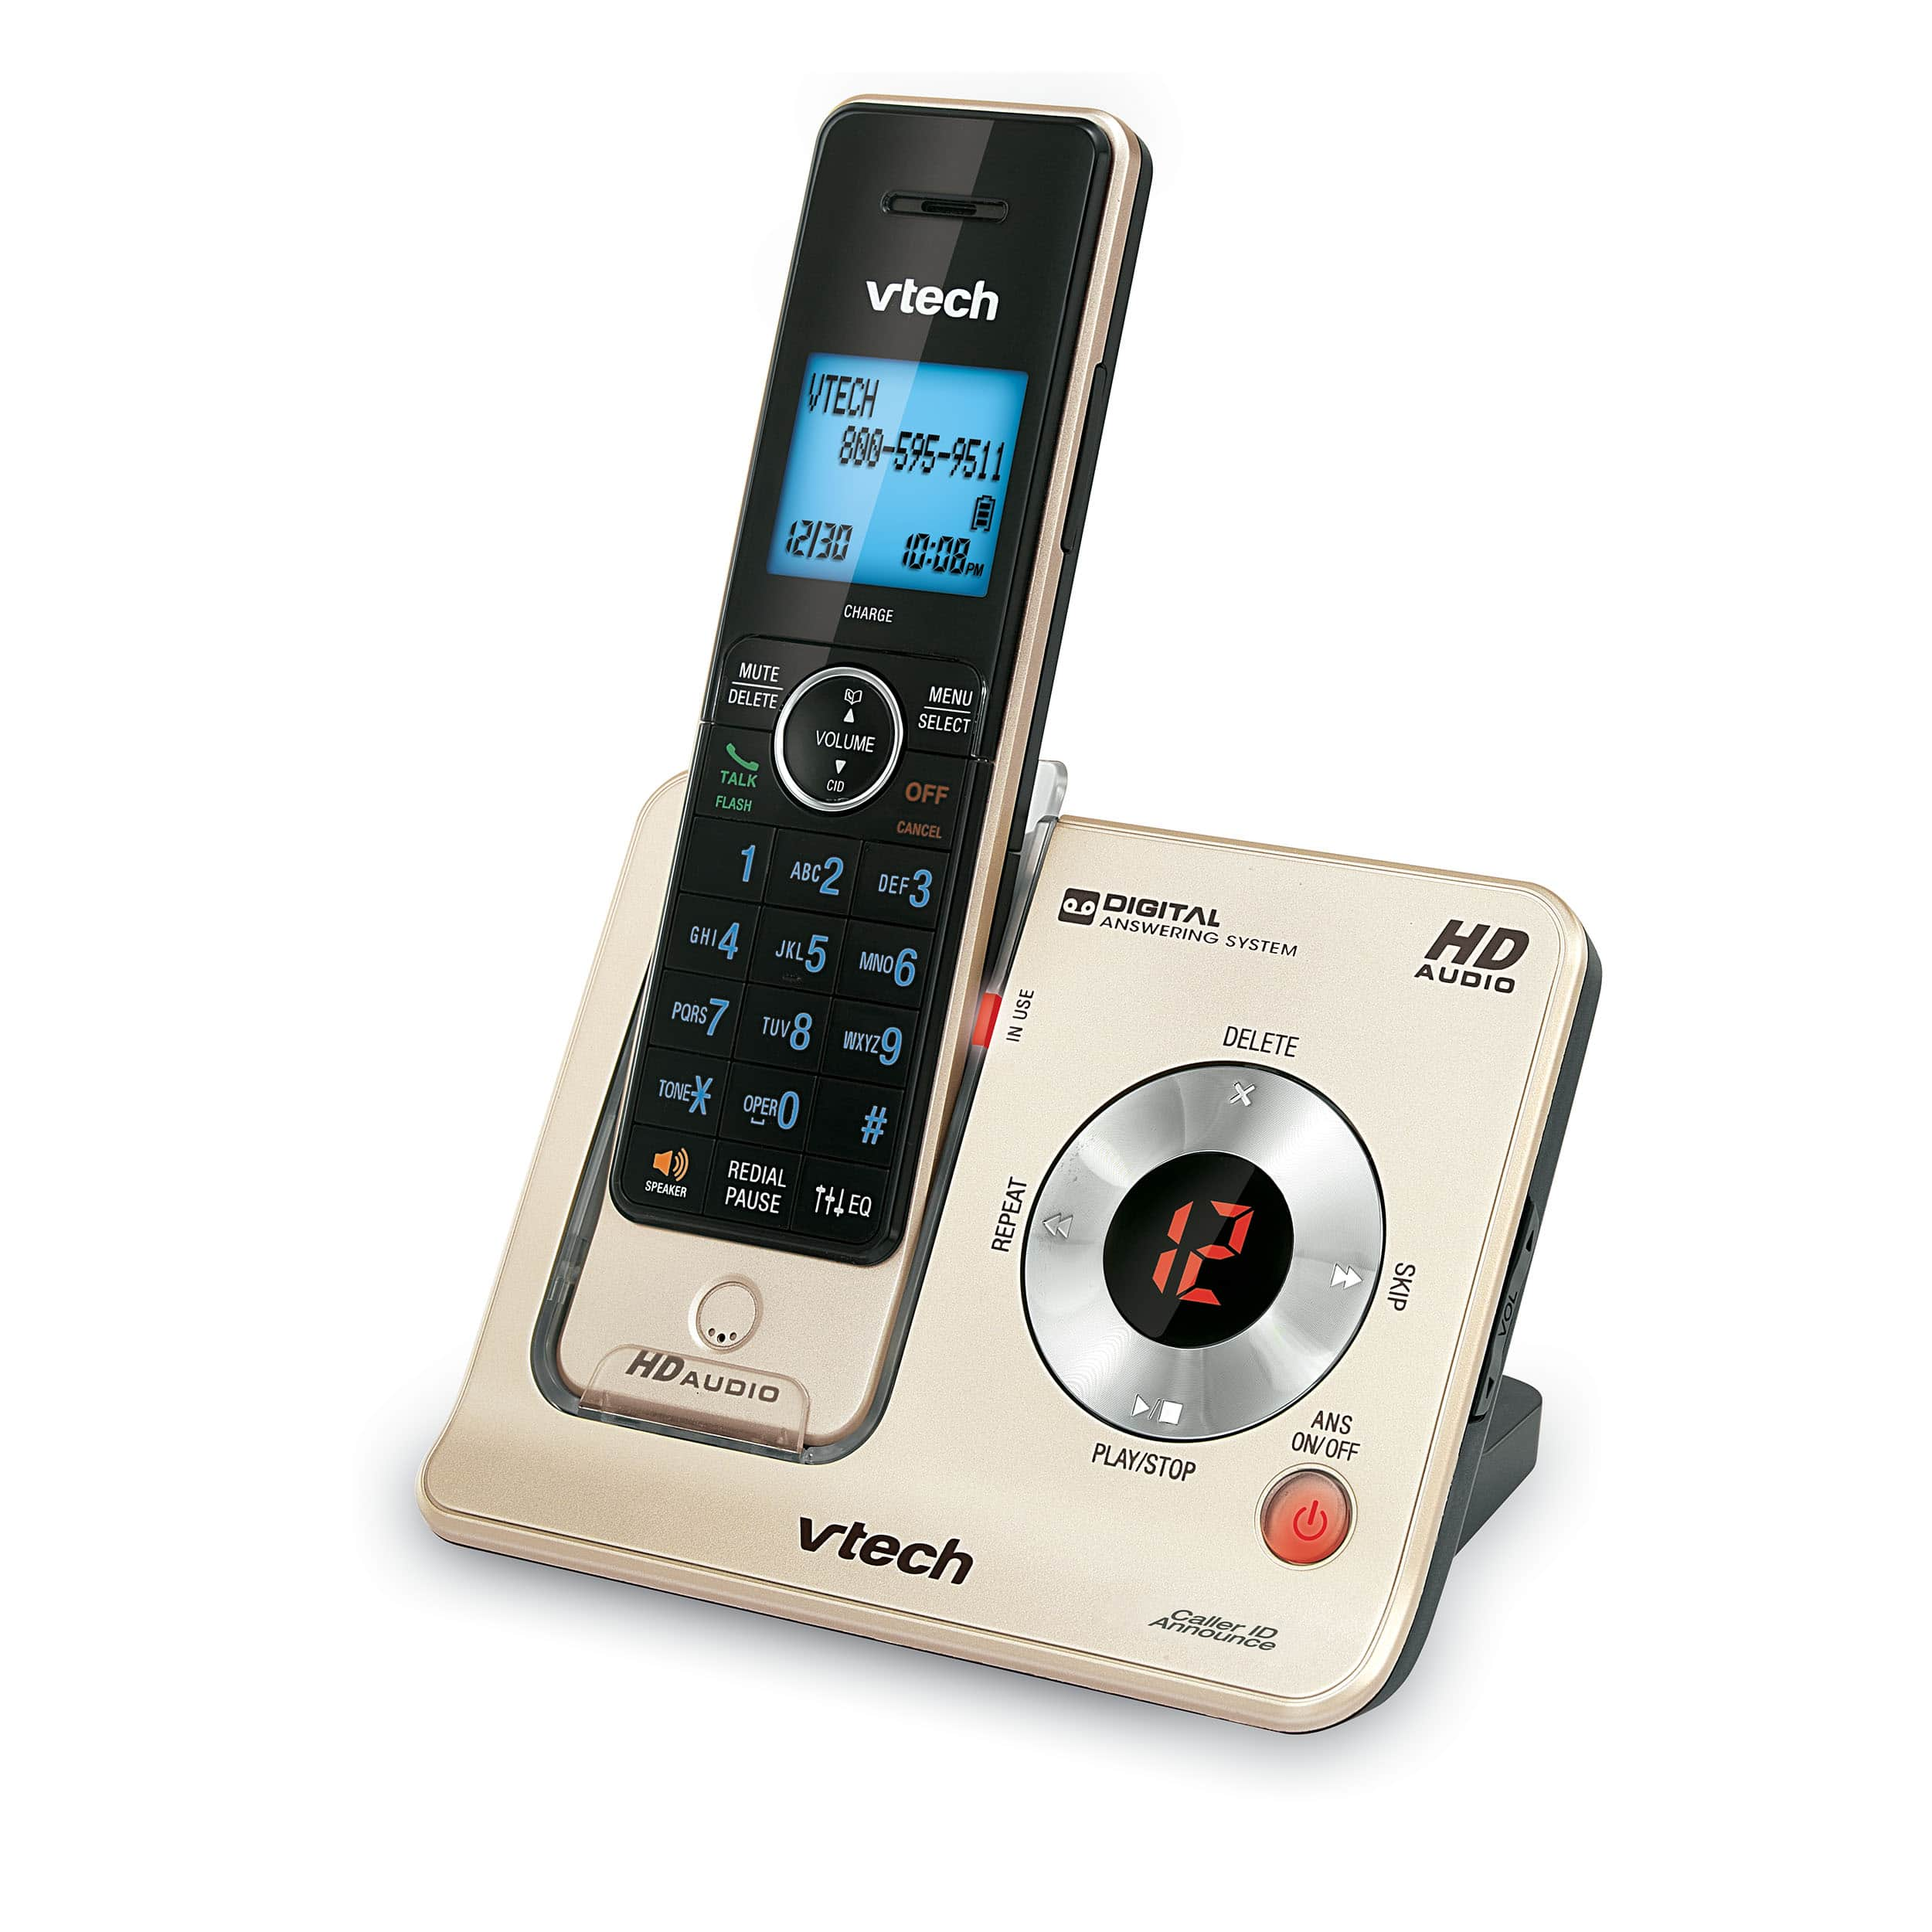 3 Handset Phone System with Caller ID/Call Waiting